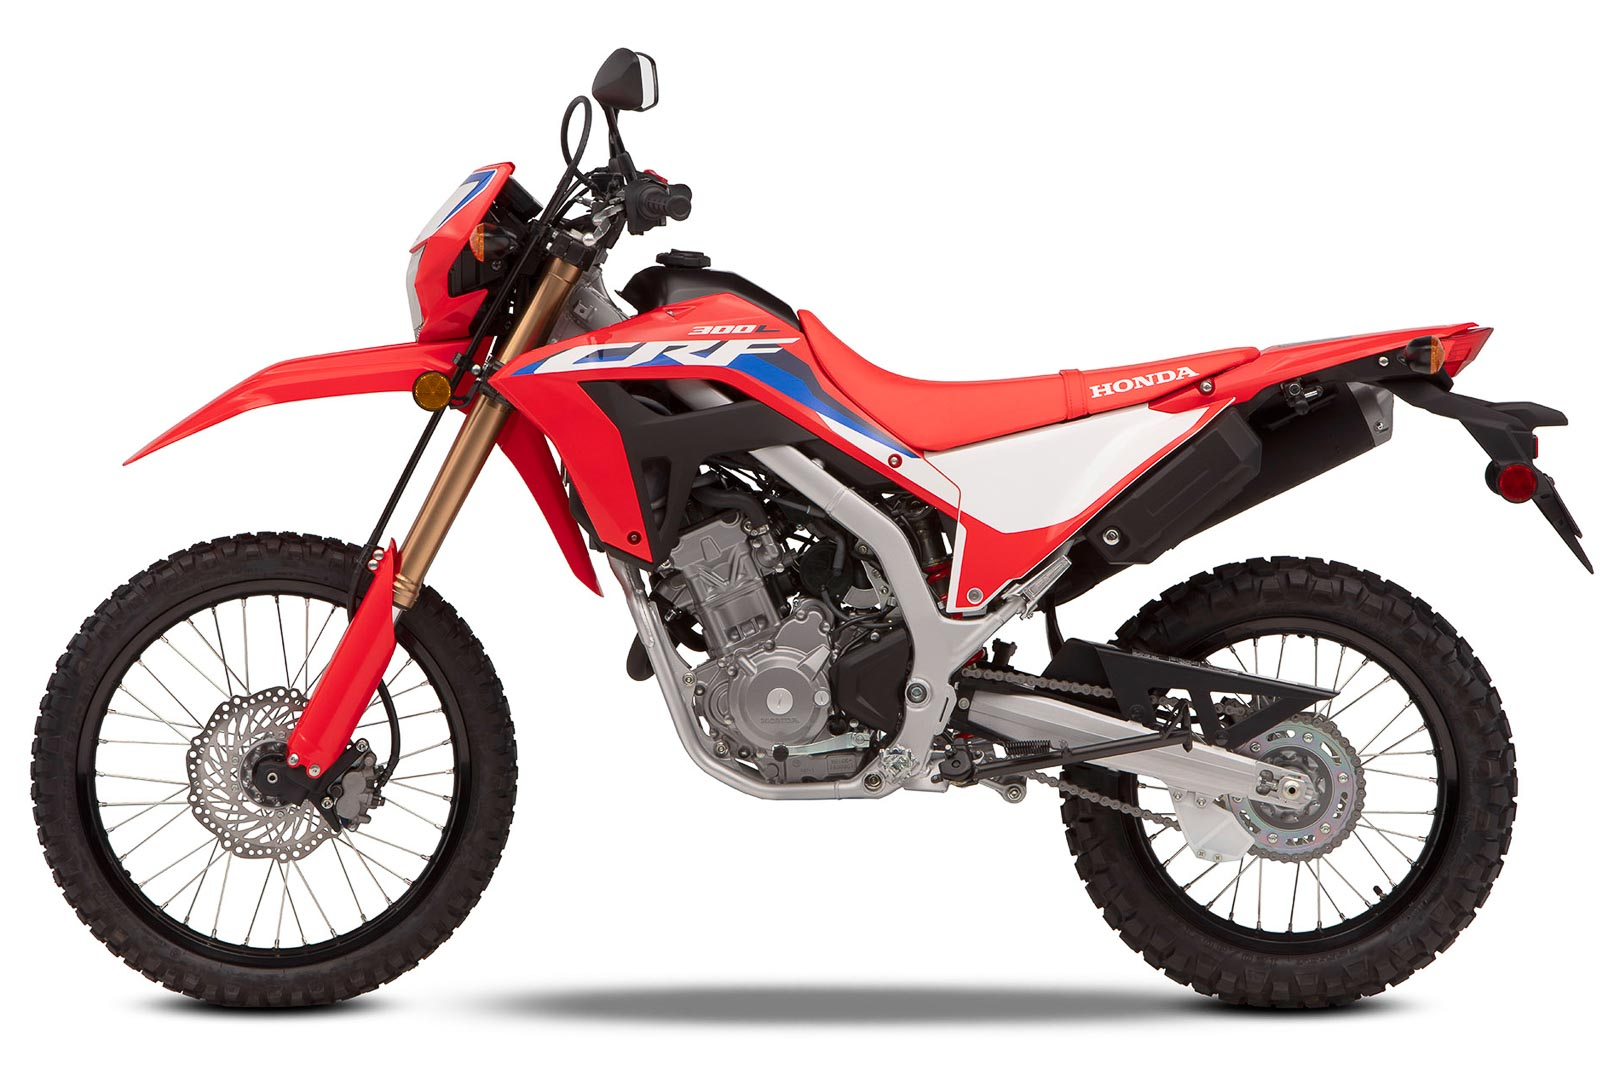 2021 Honda CRF300L: Price and MSRP